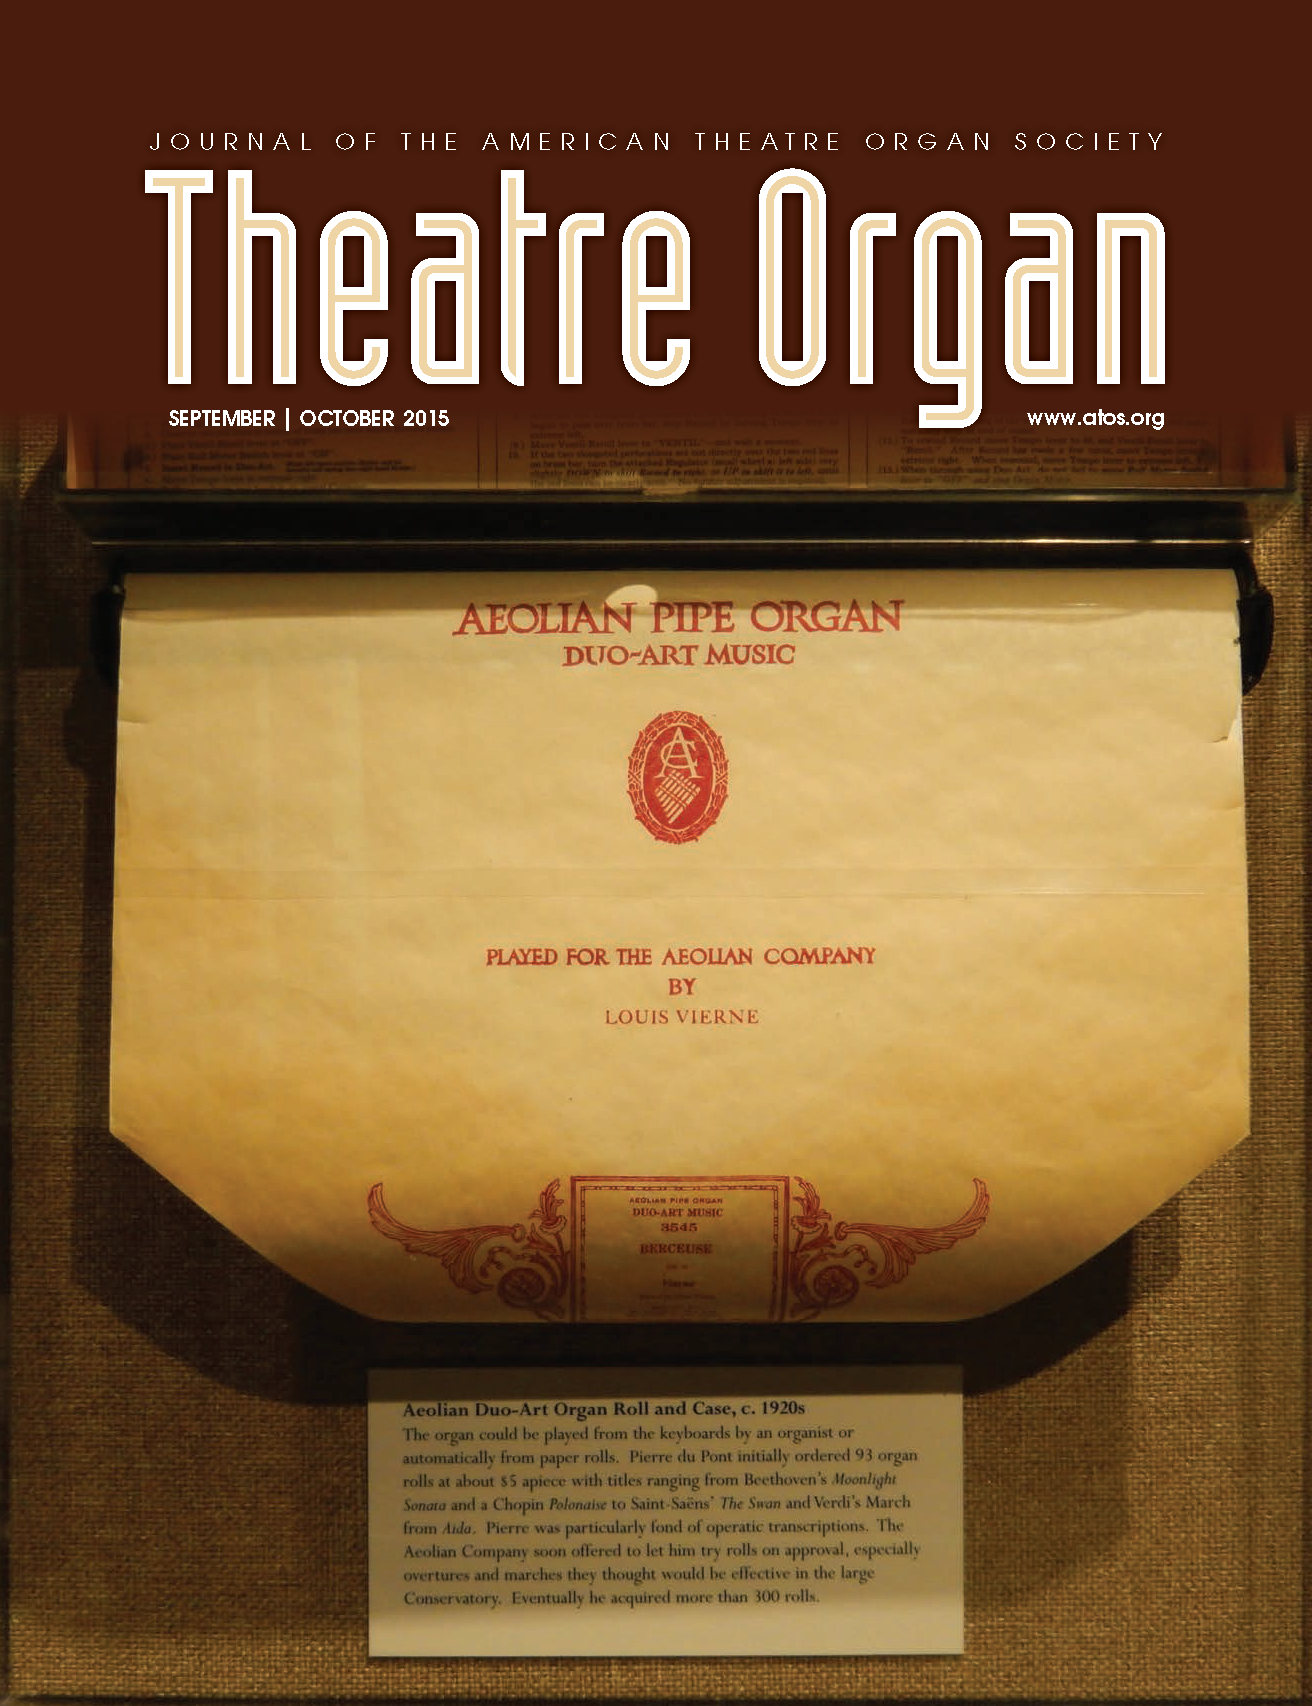 Theatre Organ, September - October 2015, Volume 57, Number 5